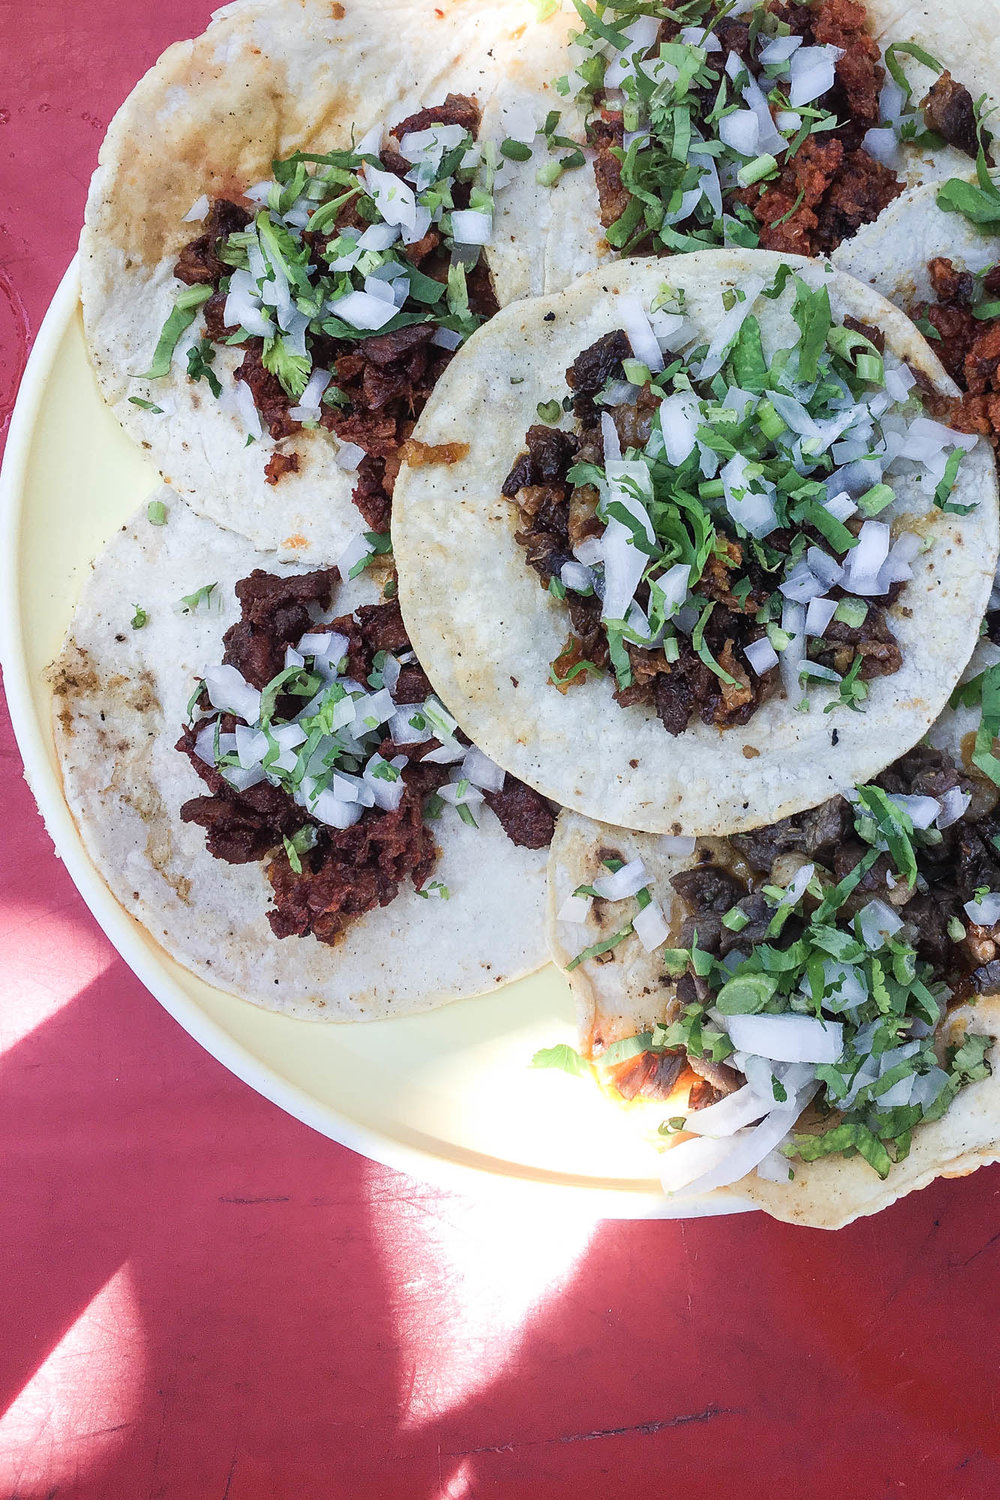 Tacos || OAXACA CITY, MEXICO FOOD GUIDE || creamandhoney.ca